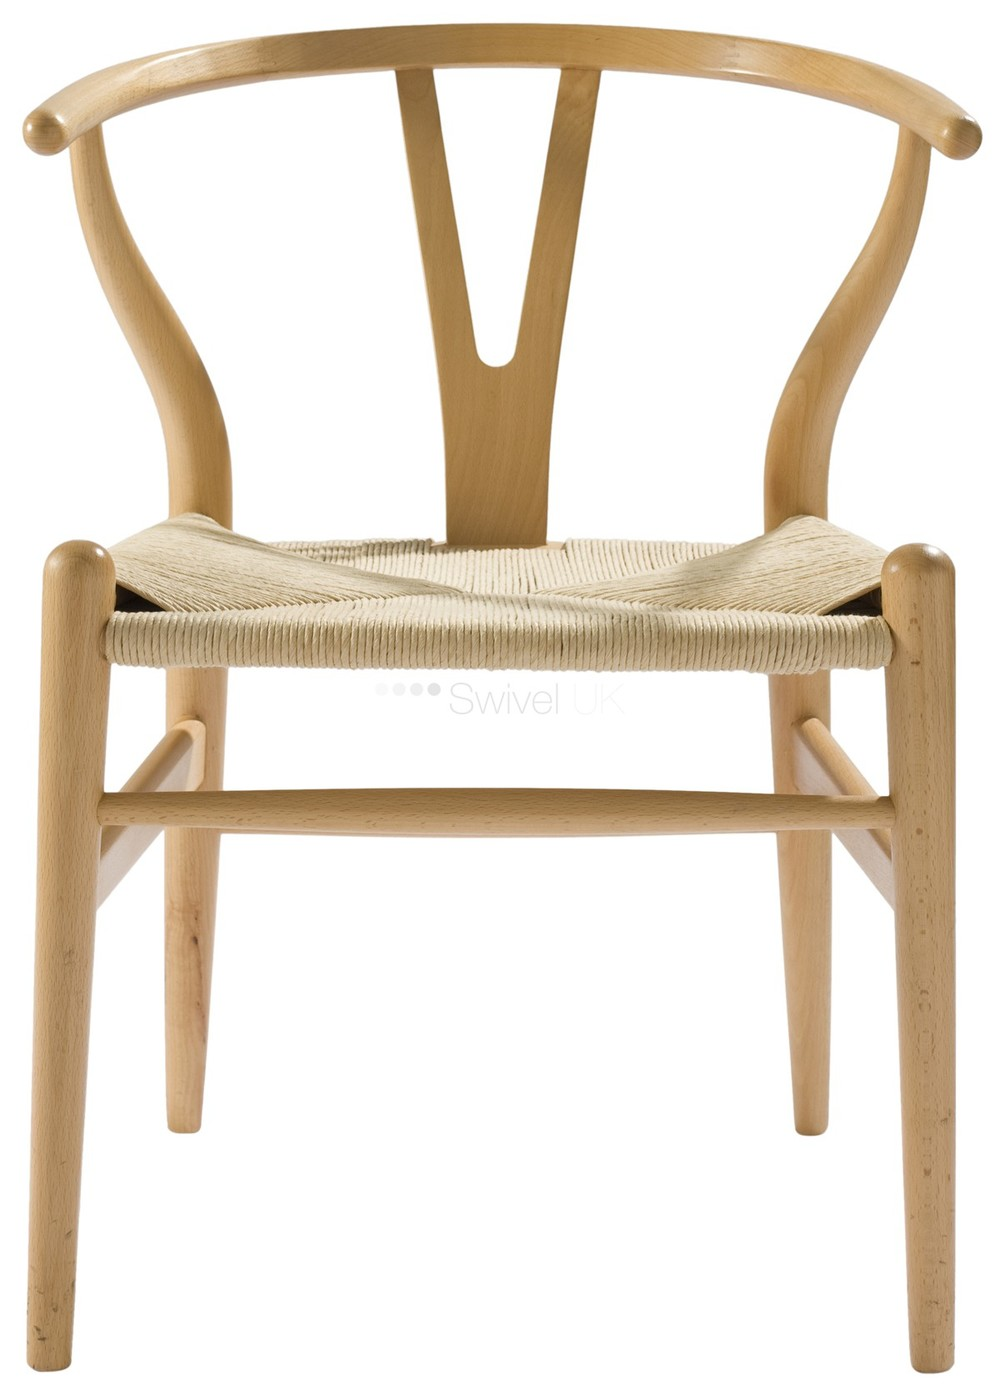 Hans-Wegner-Style-Wishbone-Replica-Chair-SwivelUK.com-335.jpg